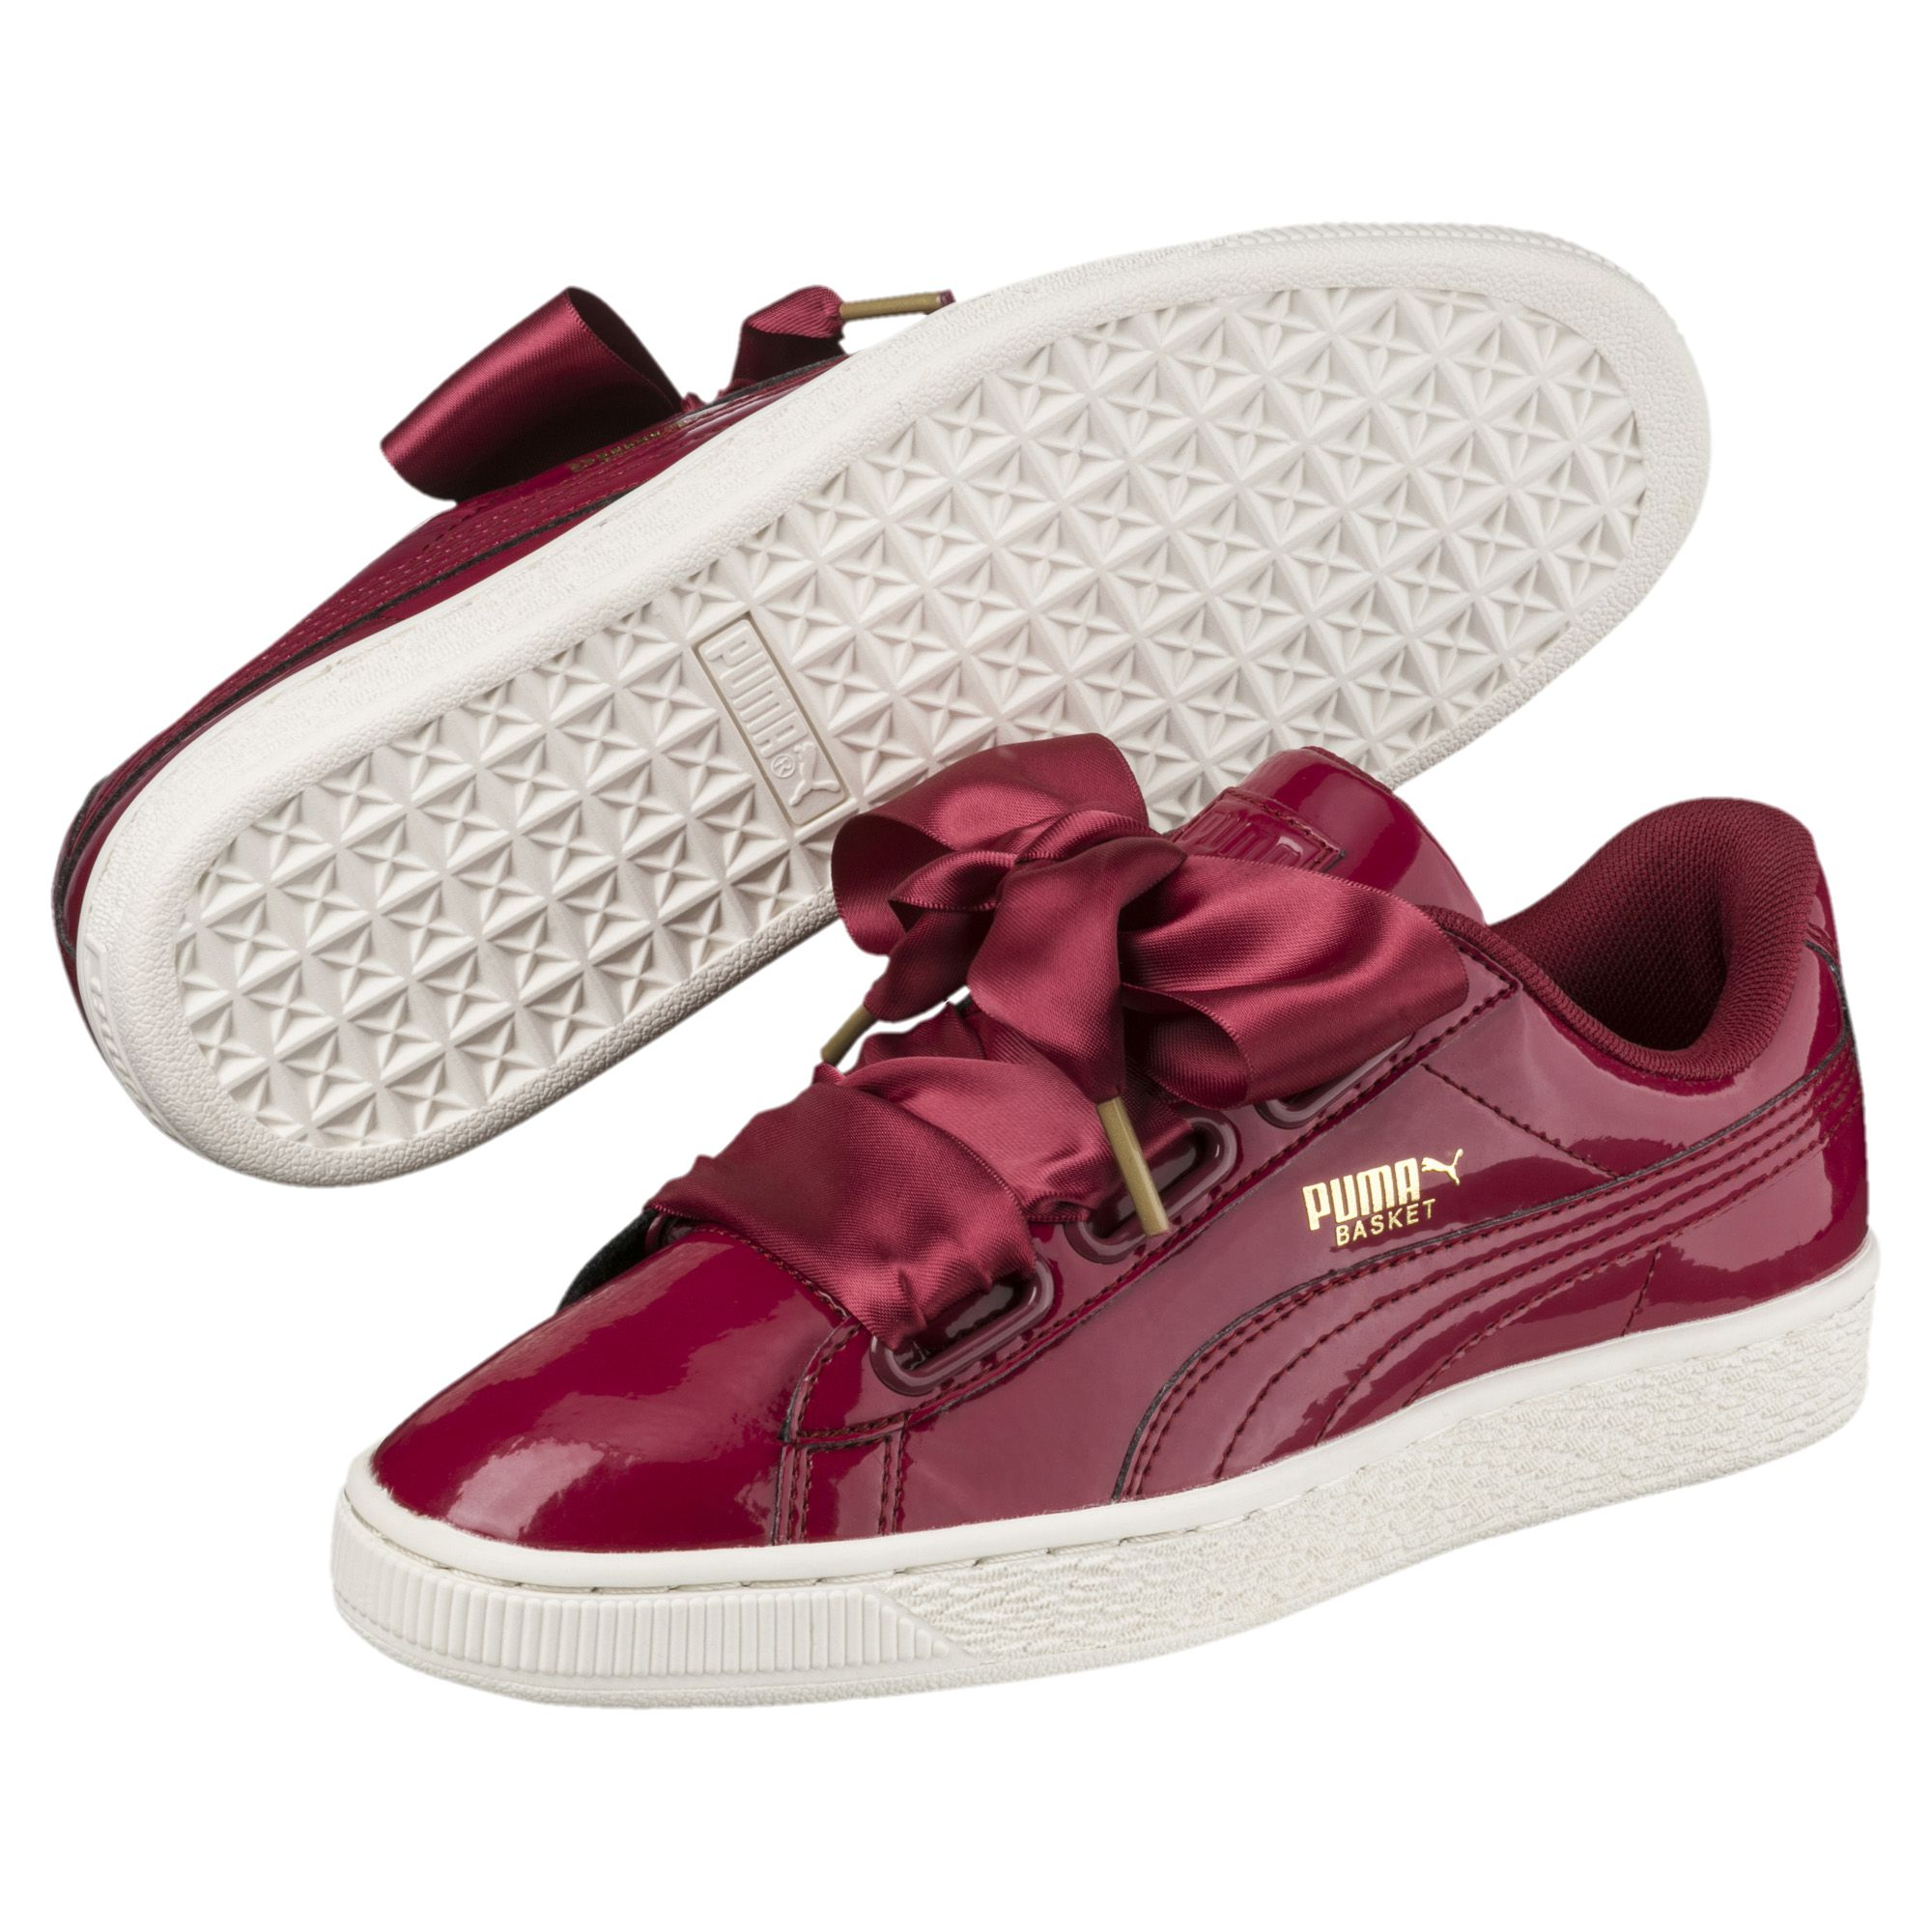 Basket Heart Patent Women's Sneakers red